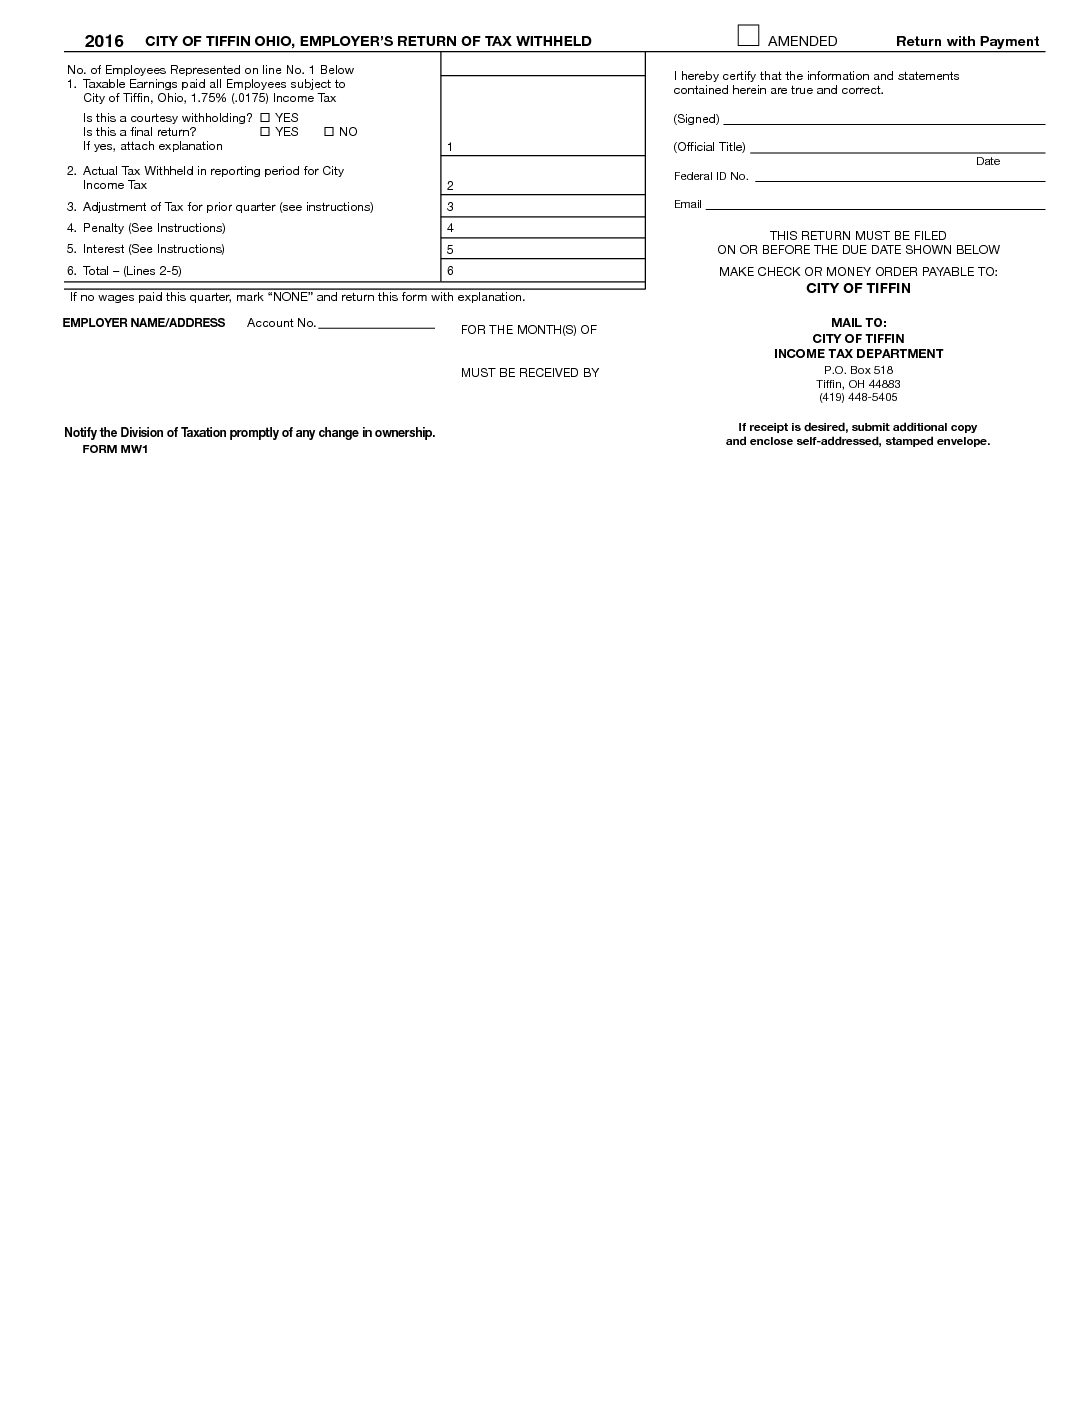 Tax Forms | City of Tiffin